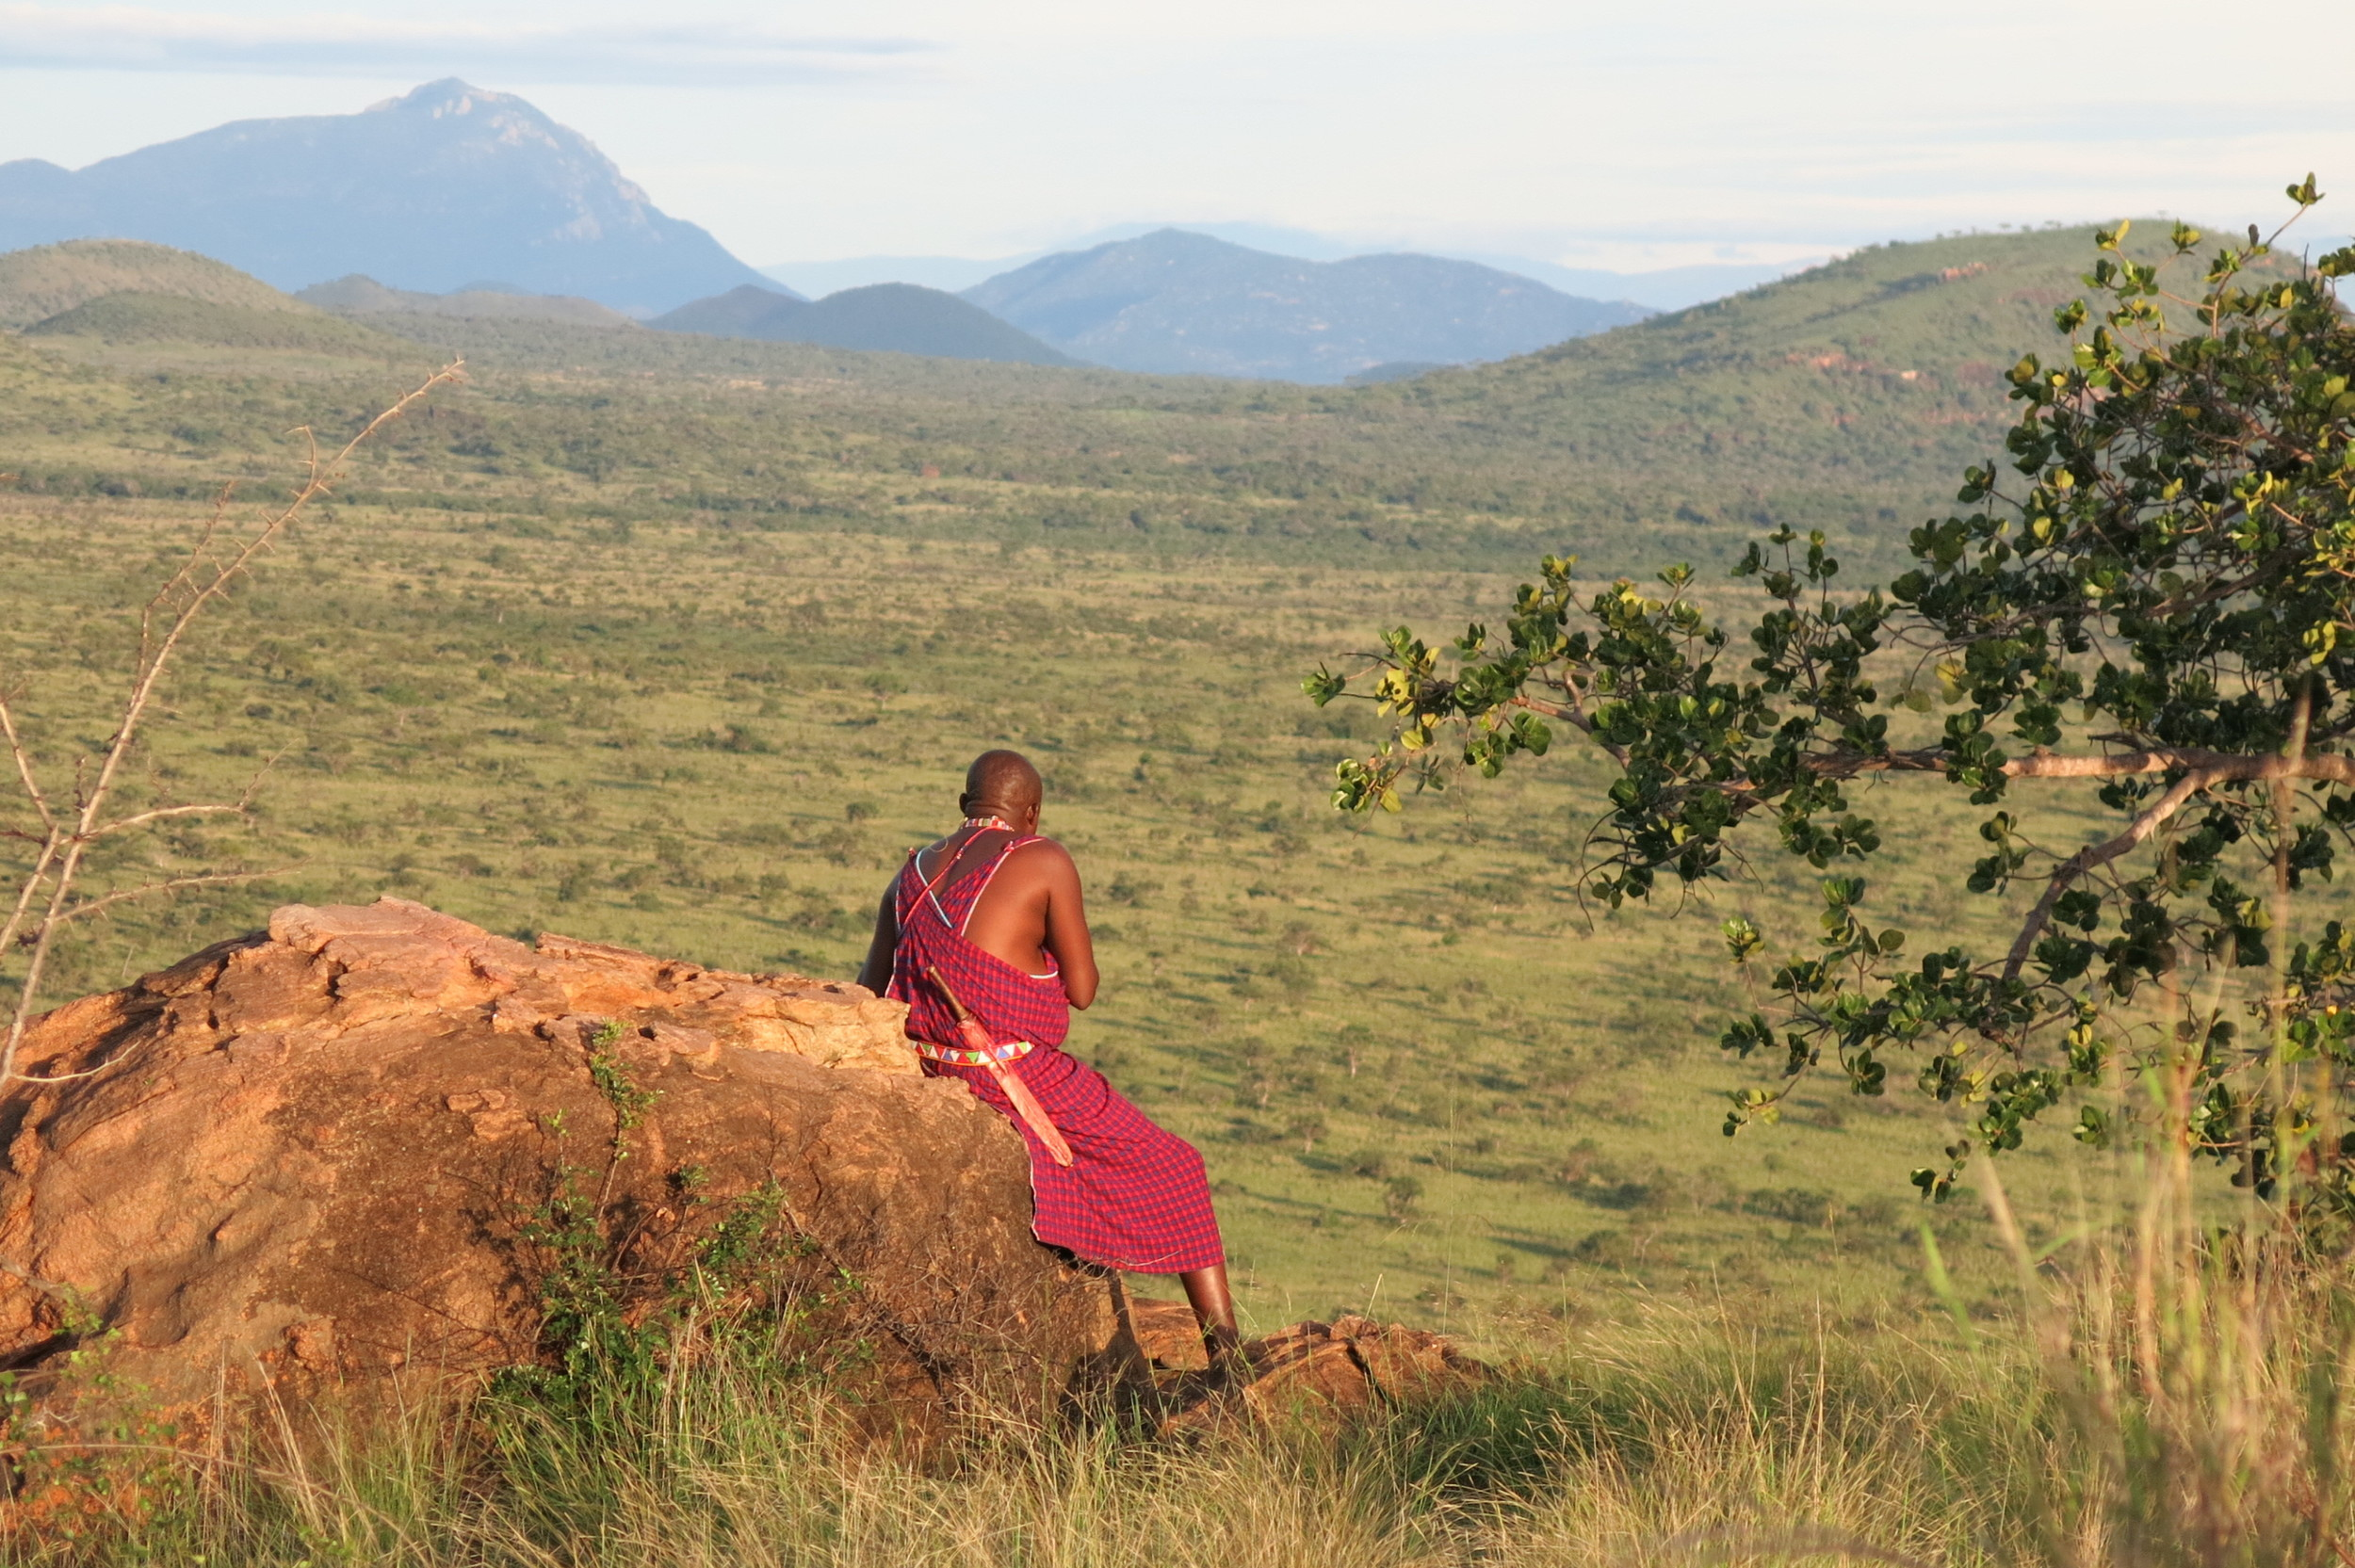 Pashiet, a Maasai warrior, sets out in the Chyulu Hills of Southern Kenya, to protect his village from a marauding lion.This land was the setting for Hemingway's  Green Hills of Africa ,at the foot of Mt. Kilimanjaro, but t his picture was taken by my friend Kira, when she visited the village in 2013. The territory is Maasai owned land in a migration corridor in between Tsavo and Amboseli National Parks. Although Pashiet is a village elder, it is considered a rite of passage for young men to make the same journey.  Photo by Kira Siebert